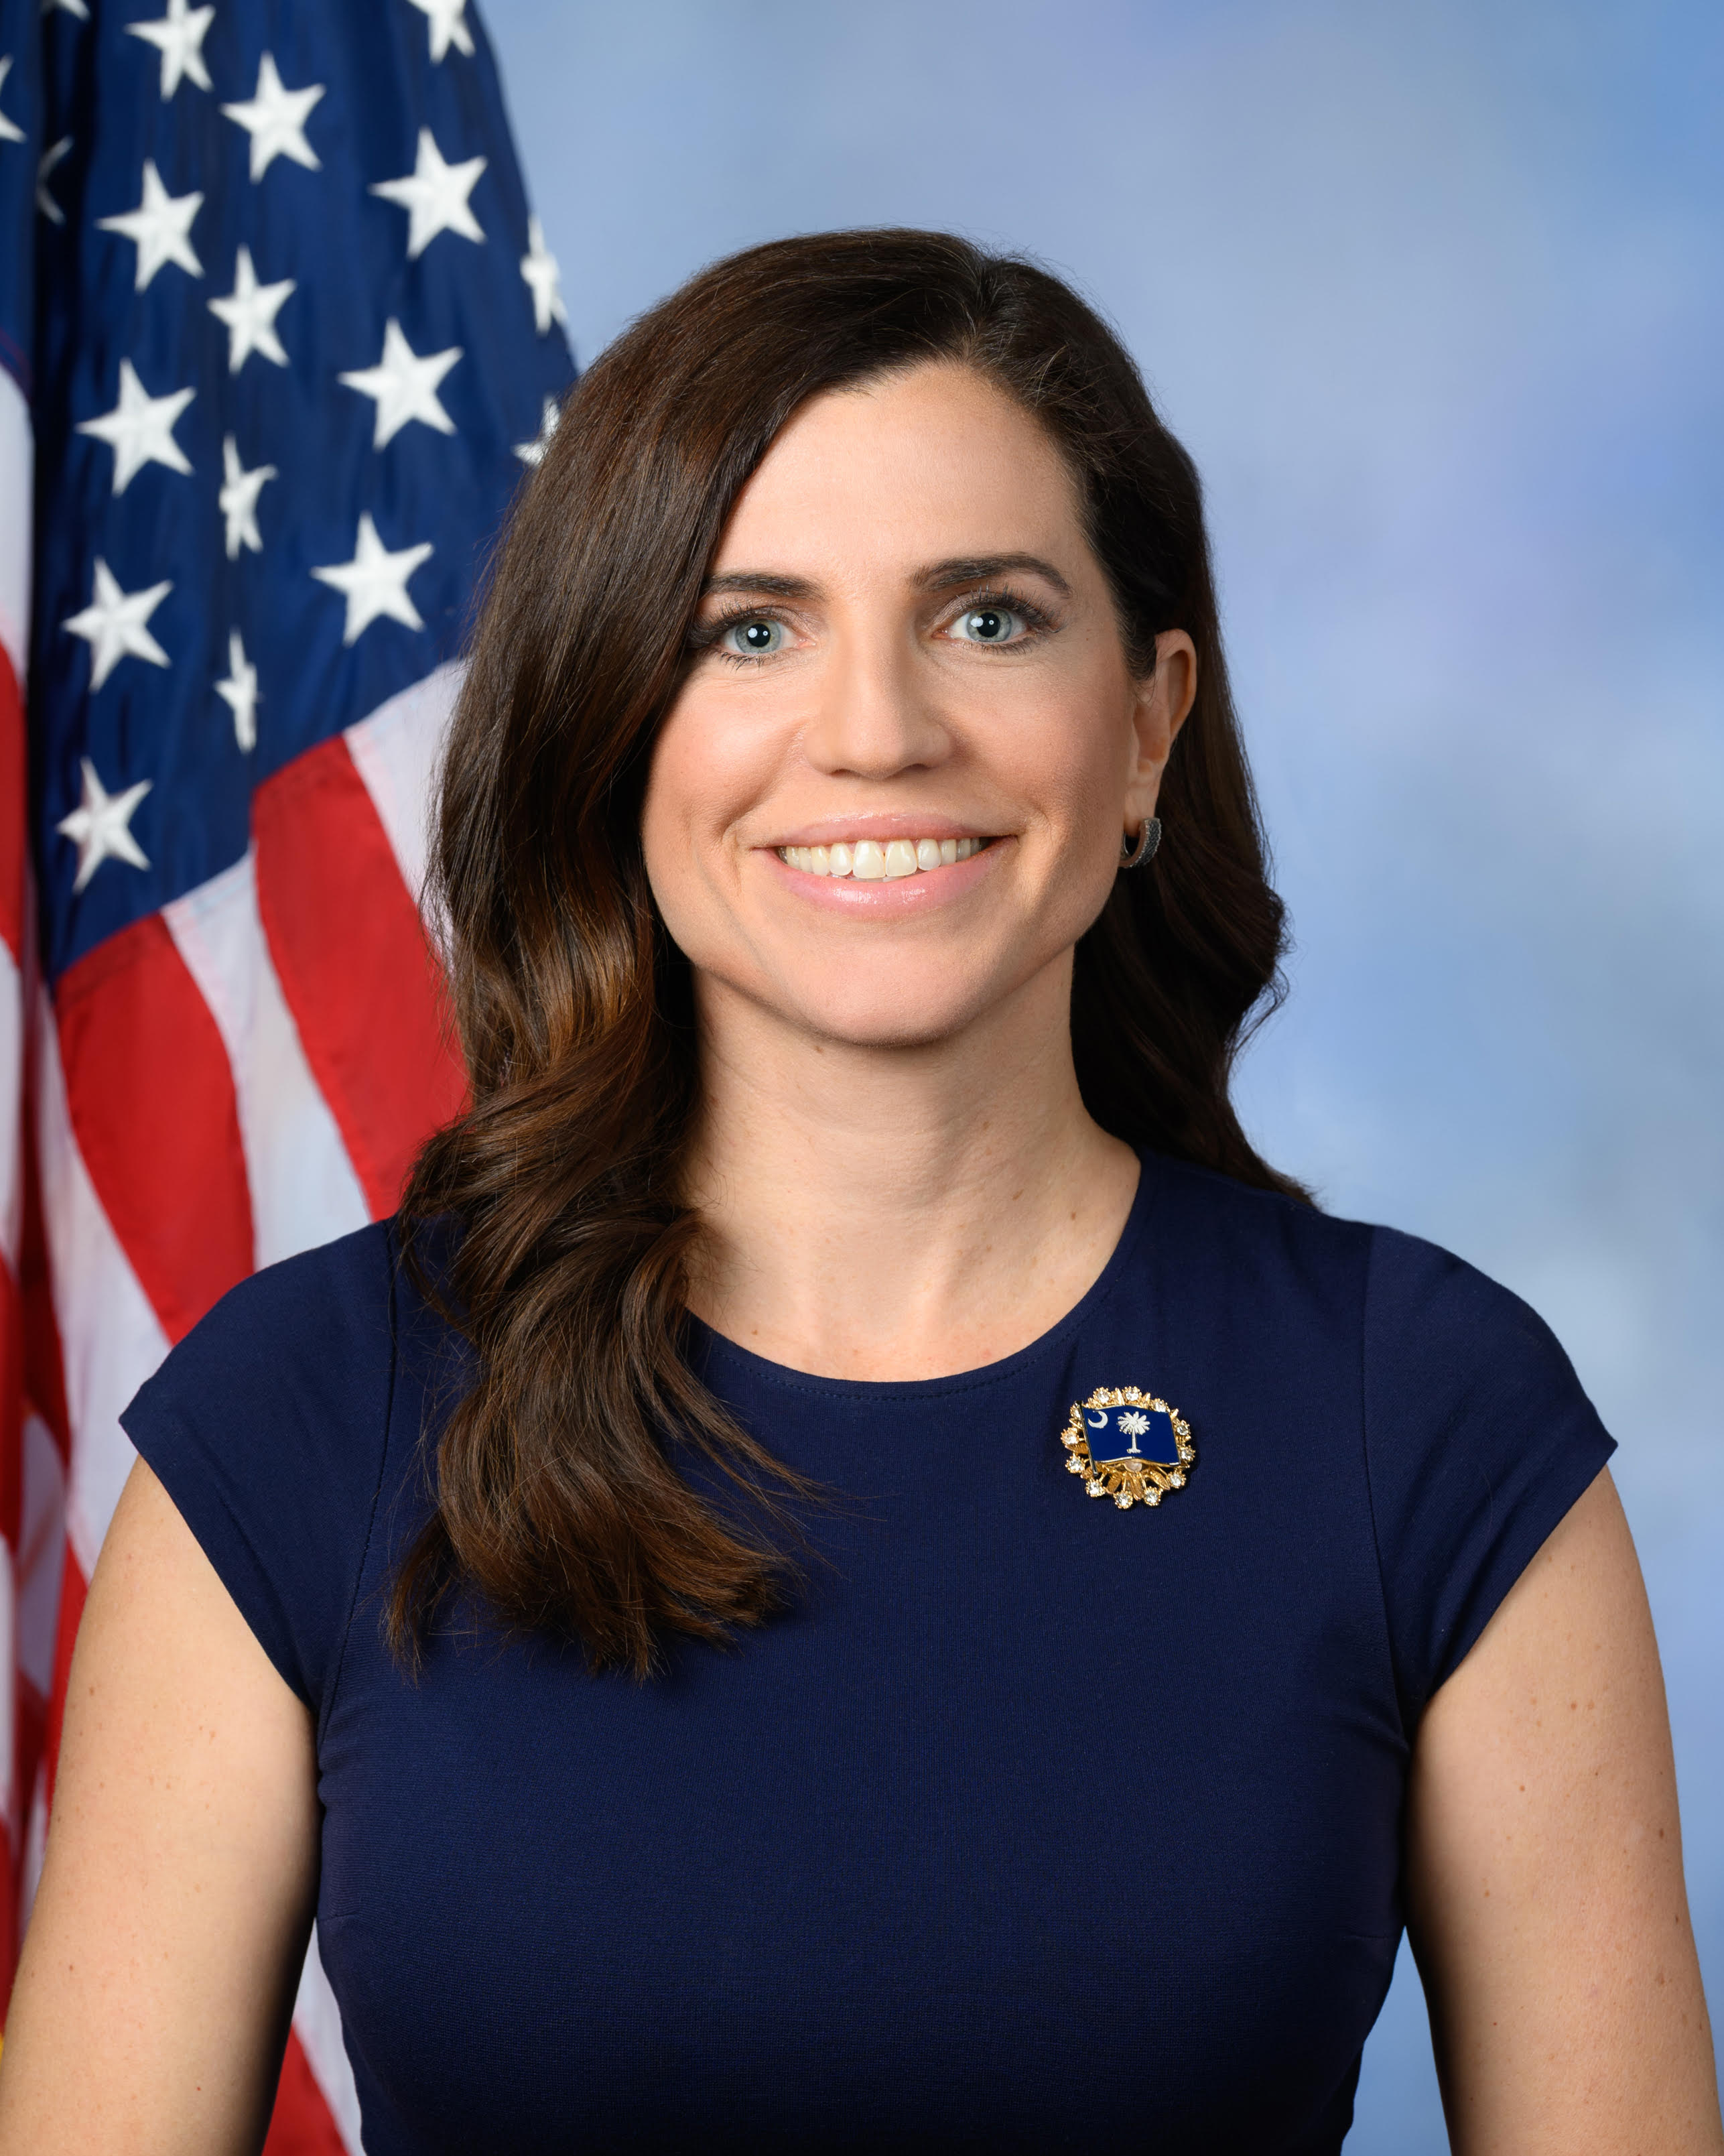 Rep. Nancy Mace South Carolina's 1st Congressional District